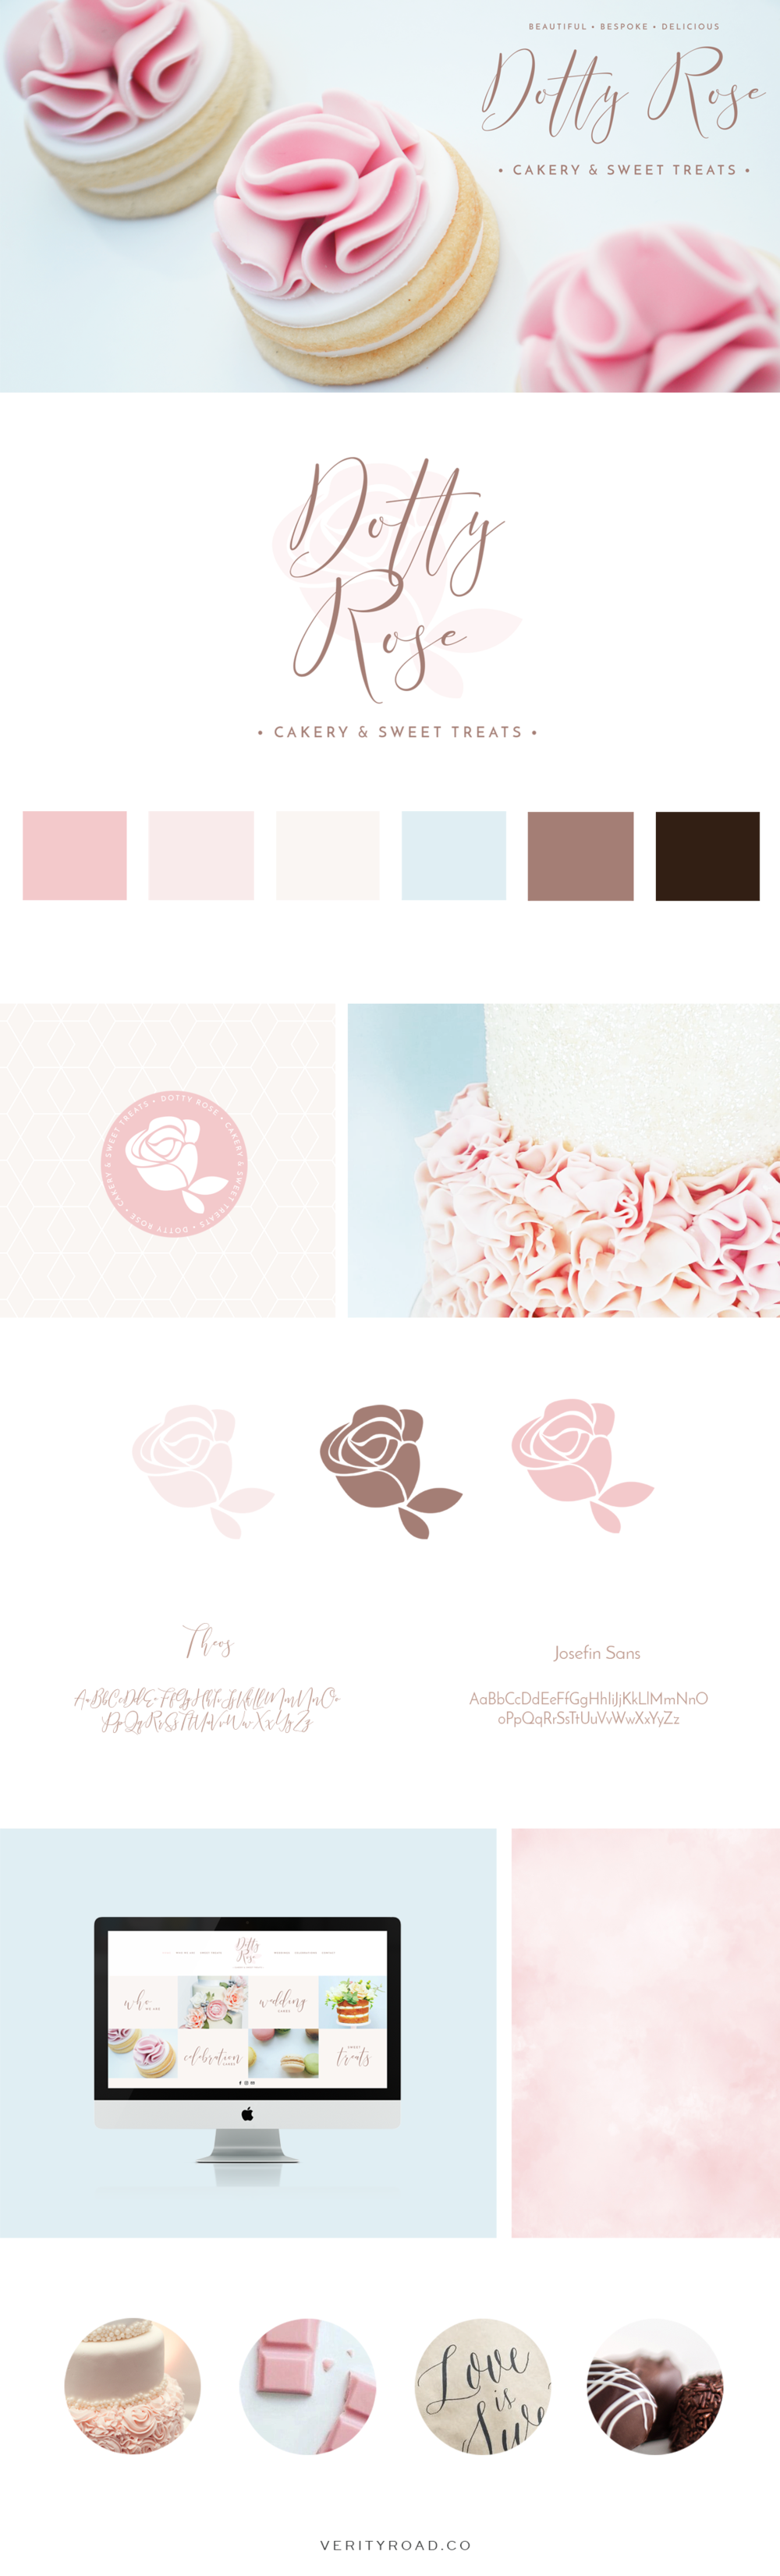 dotty rose cakery and sweet treats branding. brand identity, brand design, brand board, brand style, brand styling, web design, wedding business branding, luxury branding, feminine branding, female entrepreneur, business owner, bakery, cake artist, wedding cakes, social media branding, pastel color palette, pink, blue, chocolate brown, geometric, flowers. Logo design, branding elements, patterns & textures, typography, script font, sans serif, blogger, creative.